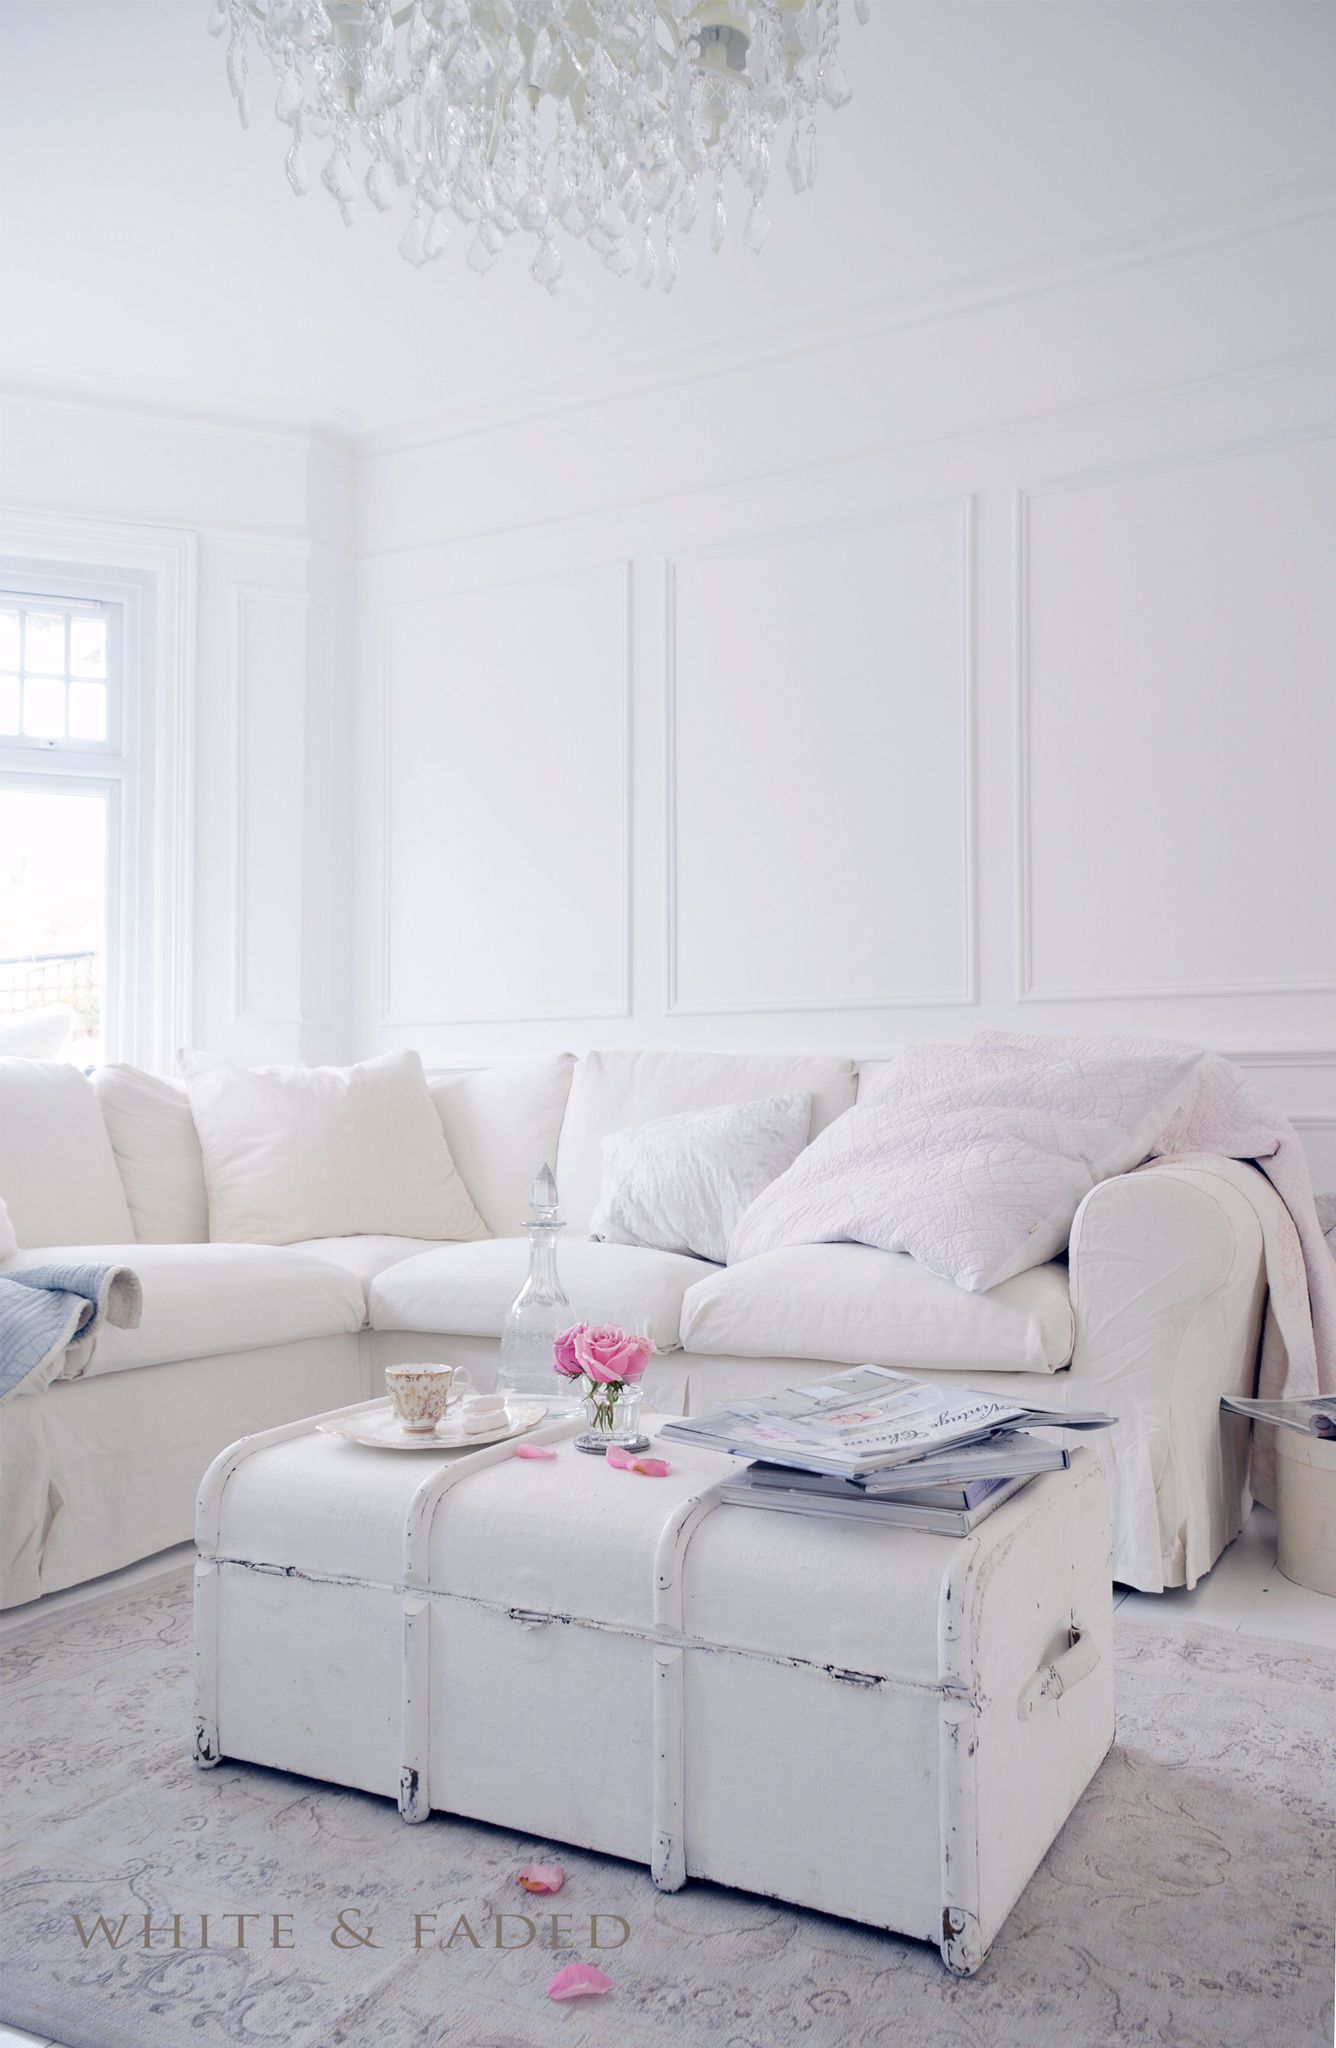 White living room with pastels